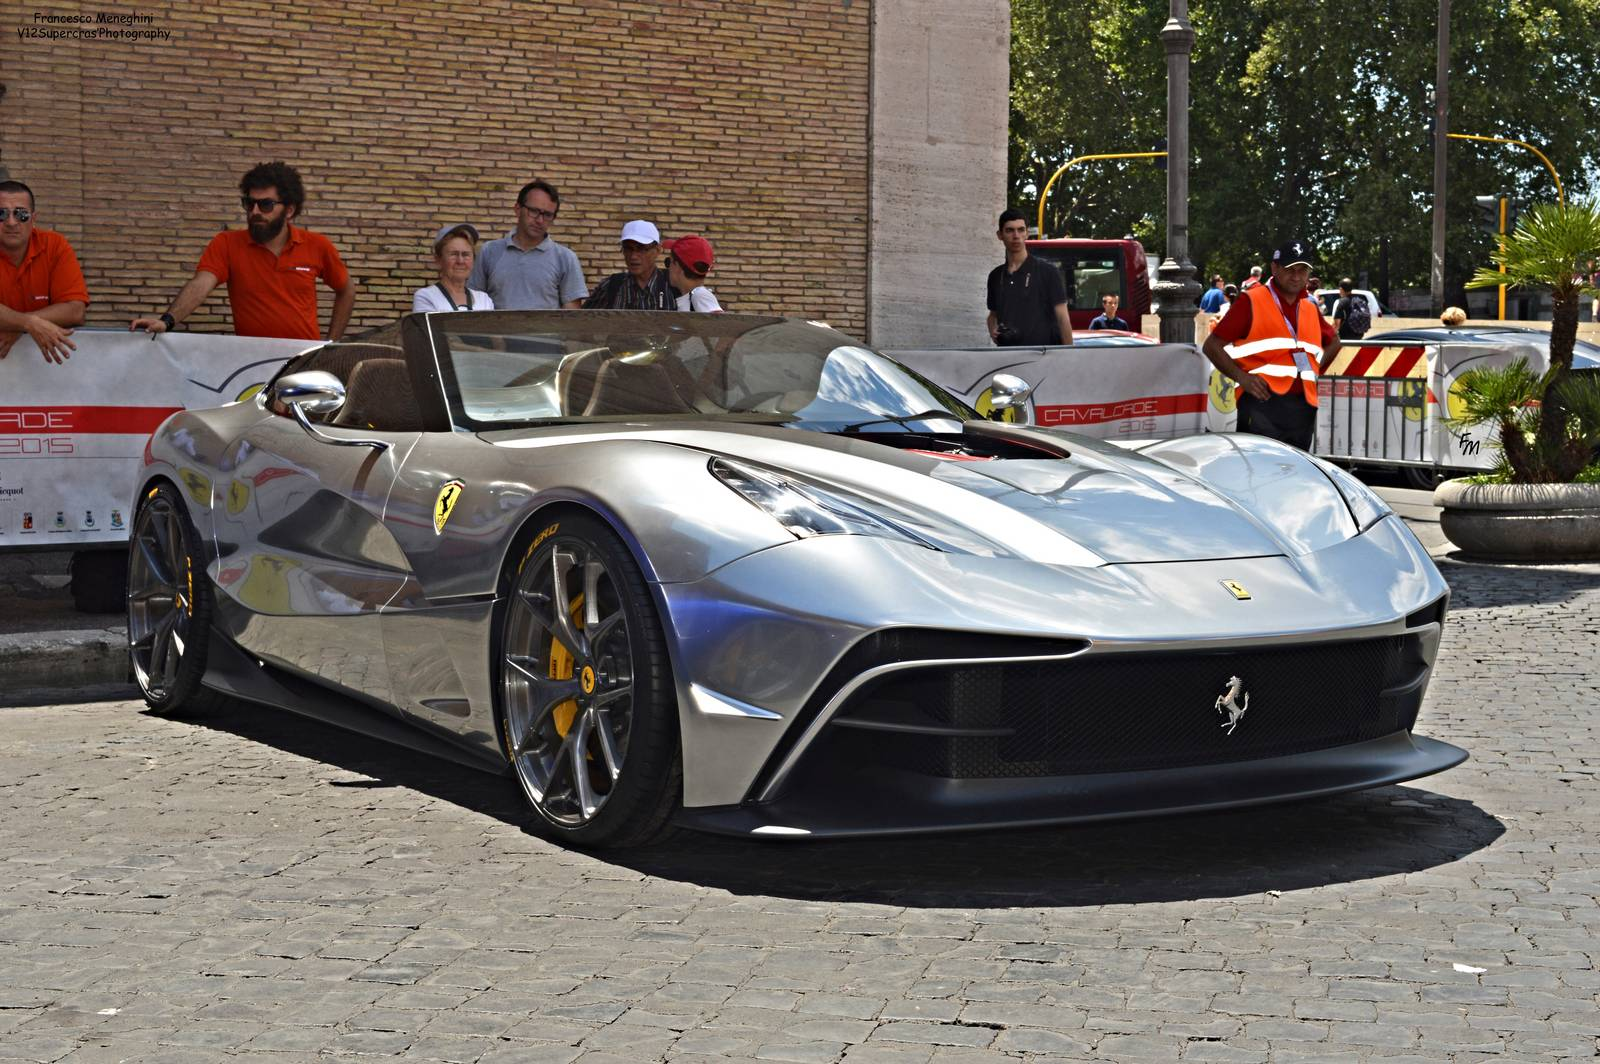 Silver Chrome Ferrari F12 TRS Snapped in Rome - GTspirit